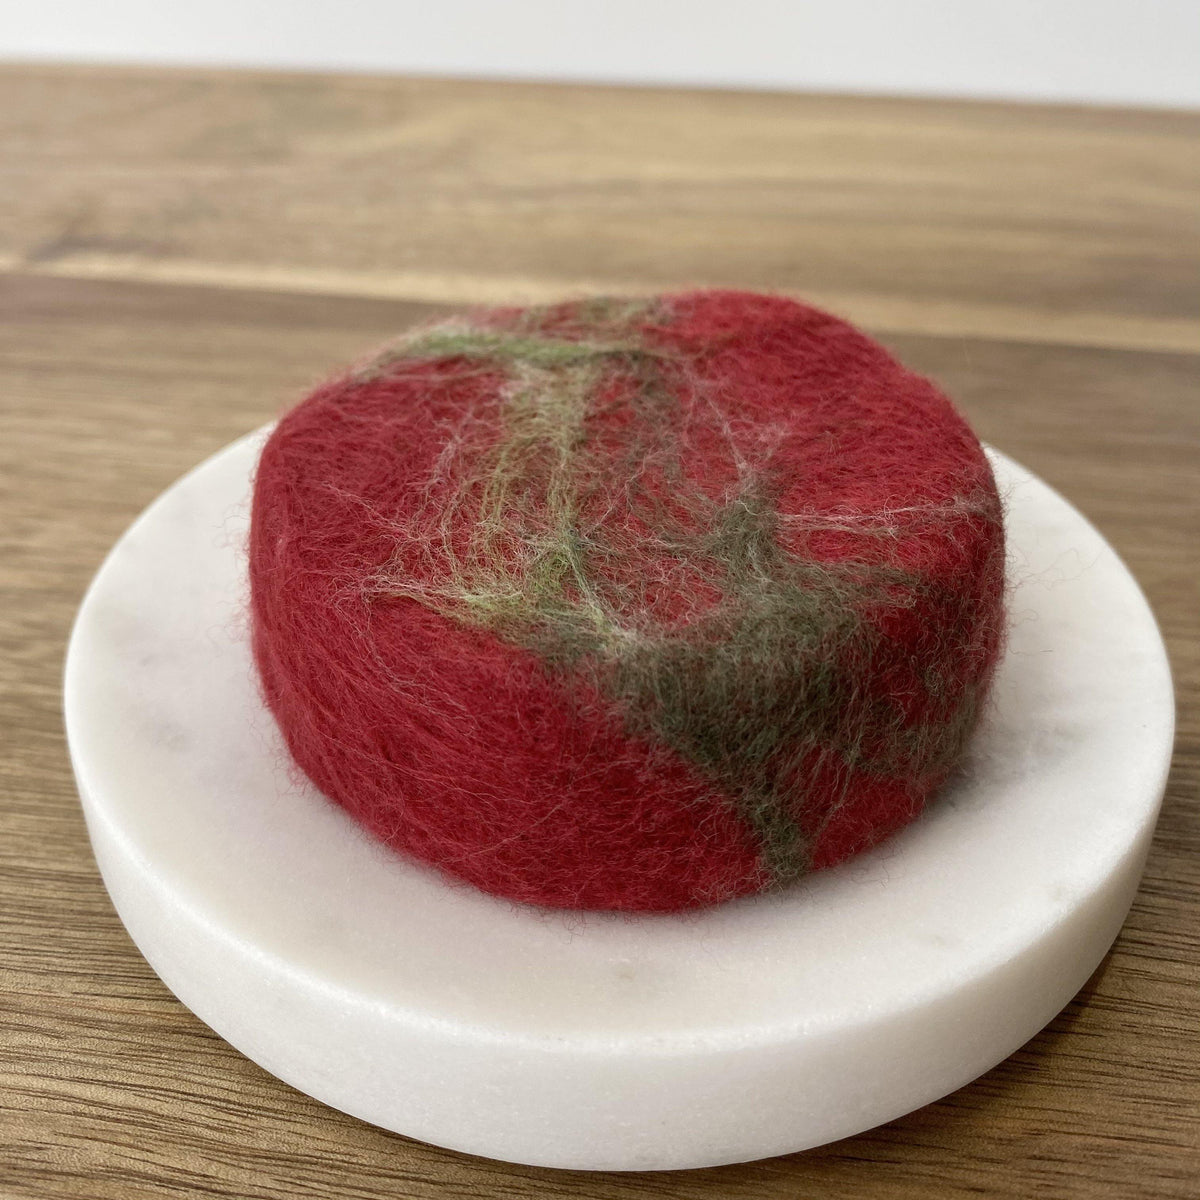 Skin Care Christmas Gift, Handcrafted Holiday Felted Soap Gift